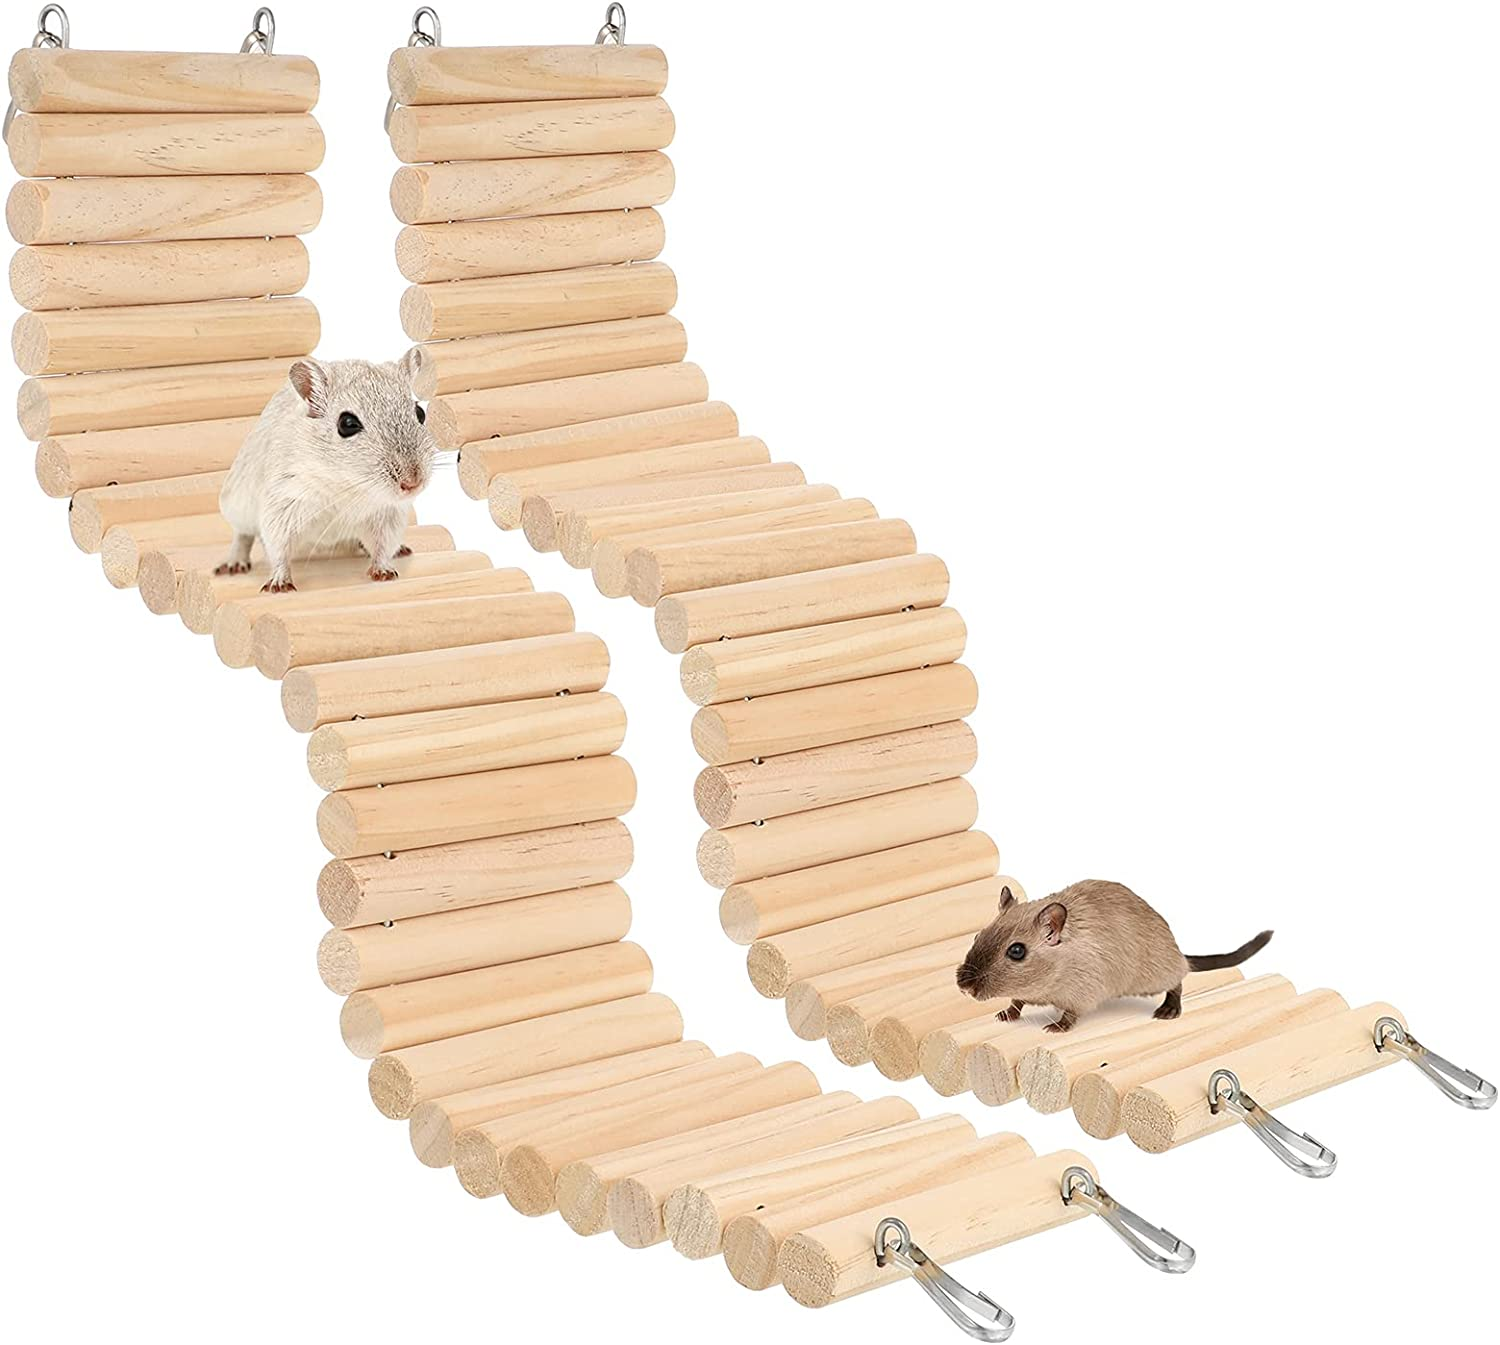 BOWINR 2 Pack Hamster Bendy Bridge Wooden Ladder Bridge for Small Animals, Natural Apple Wood Chew Toys Climbing Ladders Cage Accessories for Guinea Pig Hamster Rabbit Bunny Chinchilla Reptile